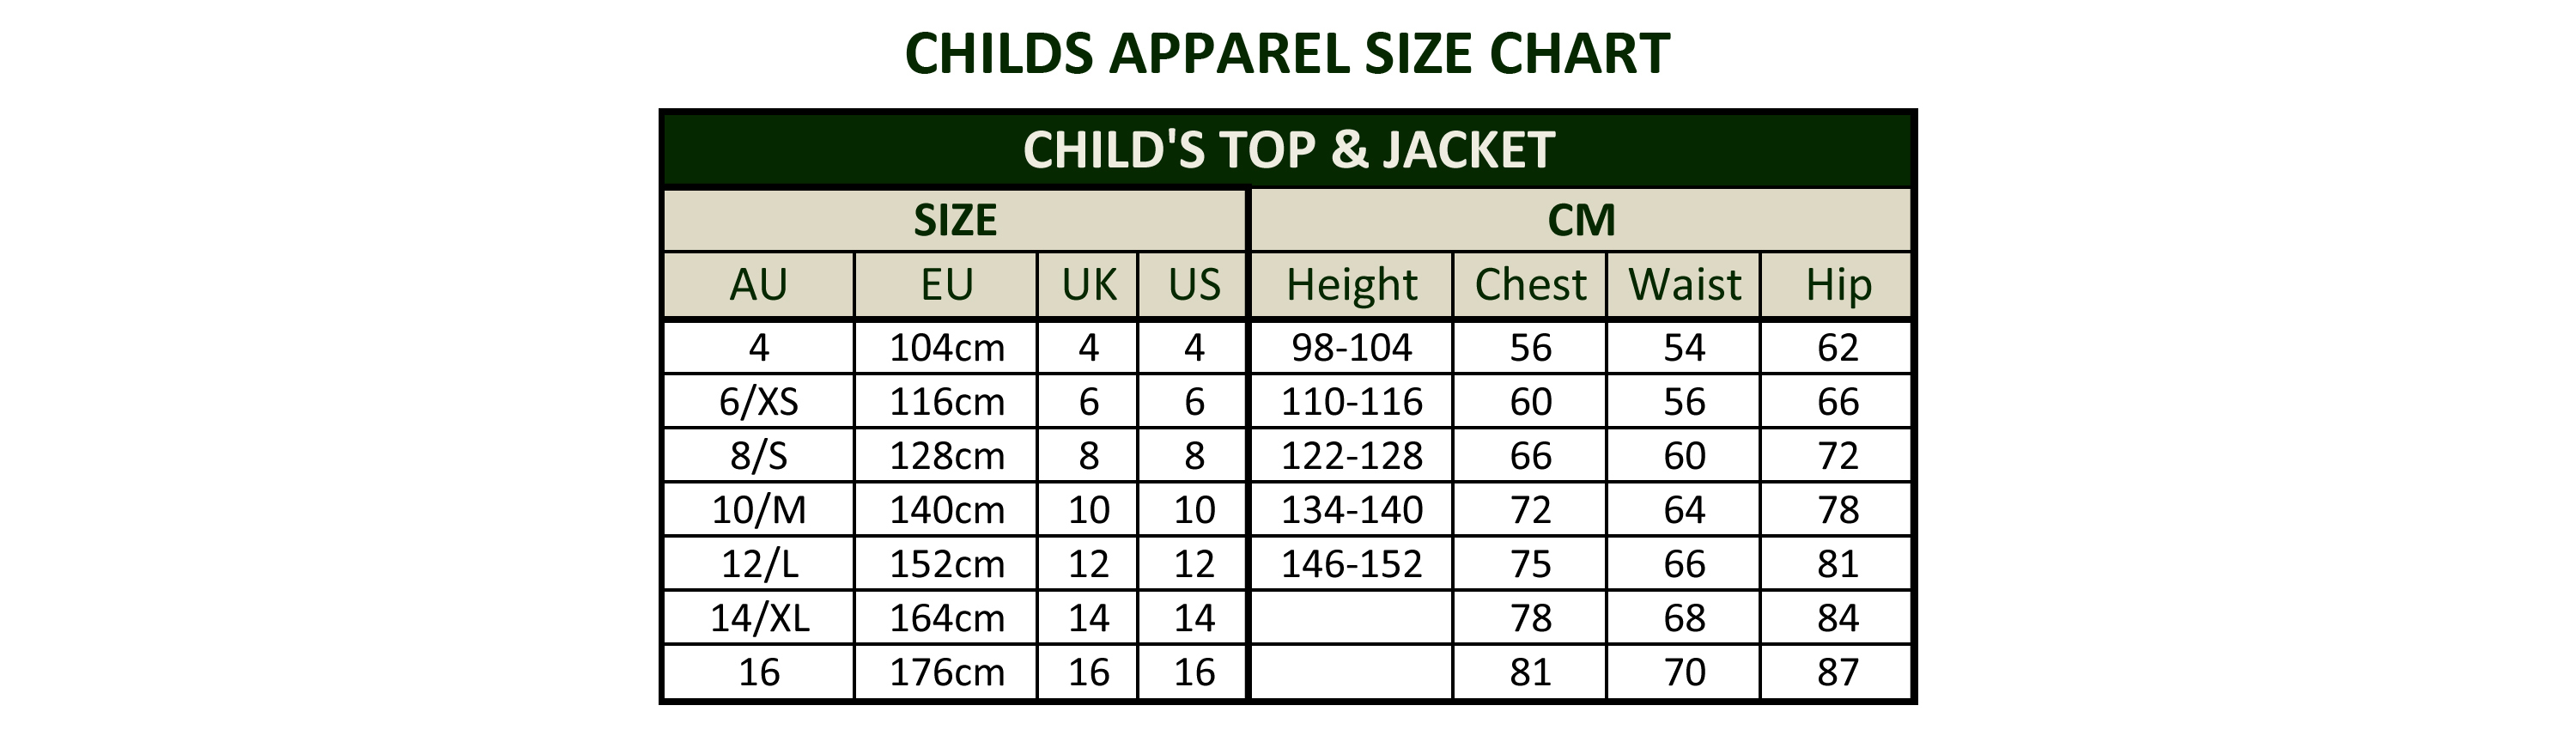 Childs Apparel Size Chart Jpg